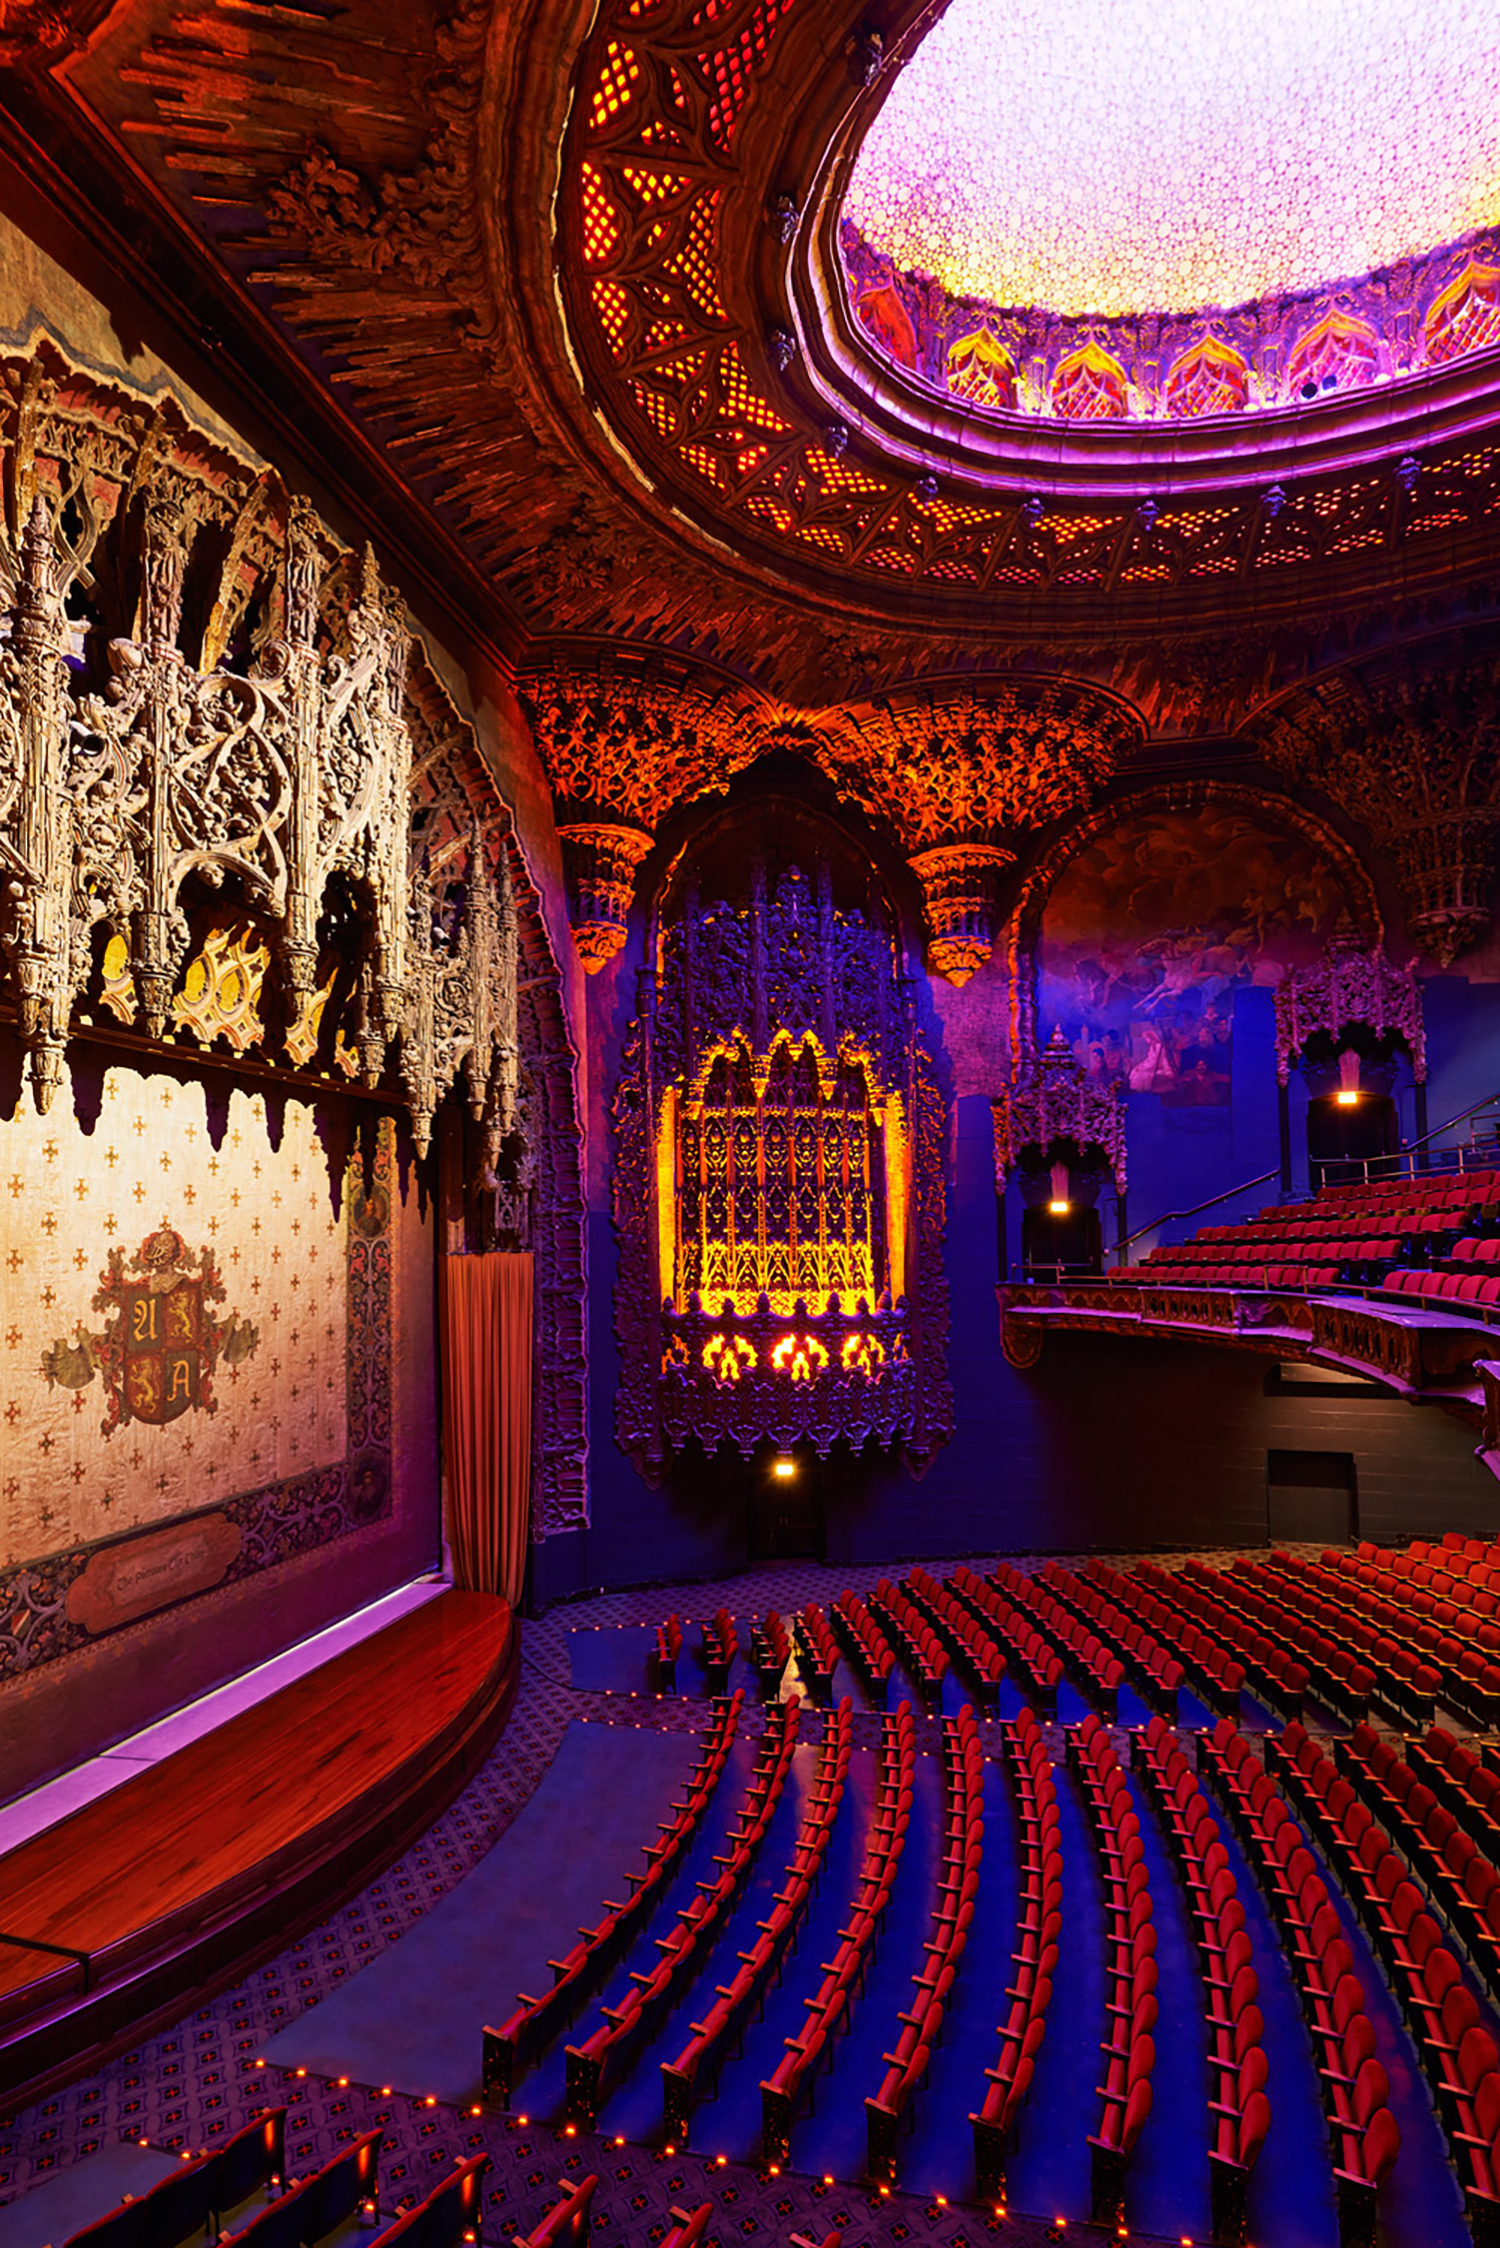 Ace Hotel Theater, Los Angeles, California, 2014